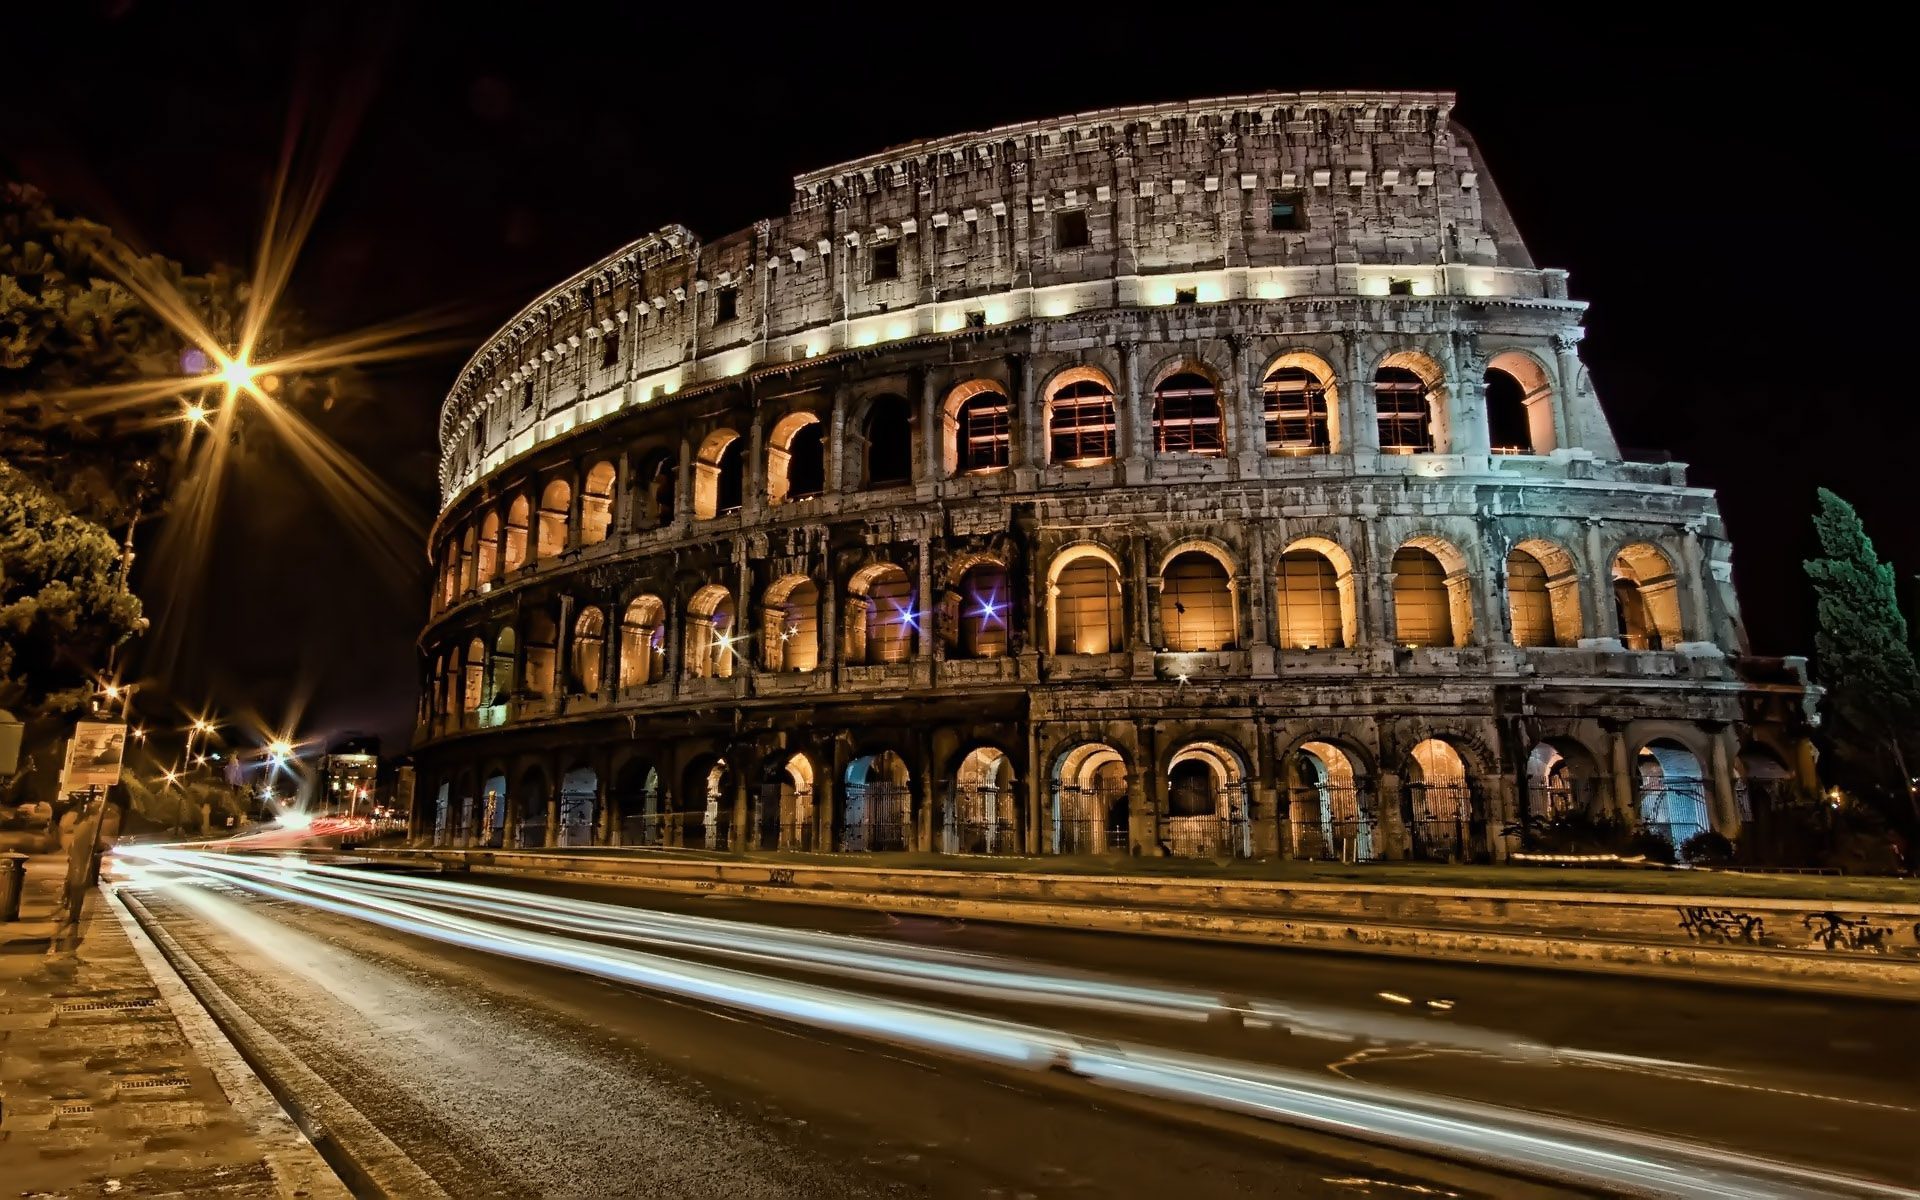 European Architectural Features And Landscape Lighting